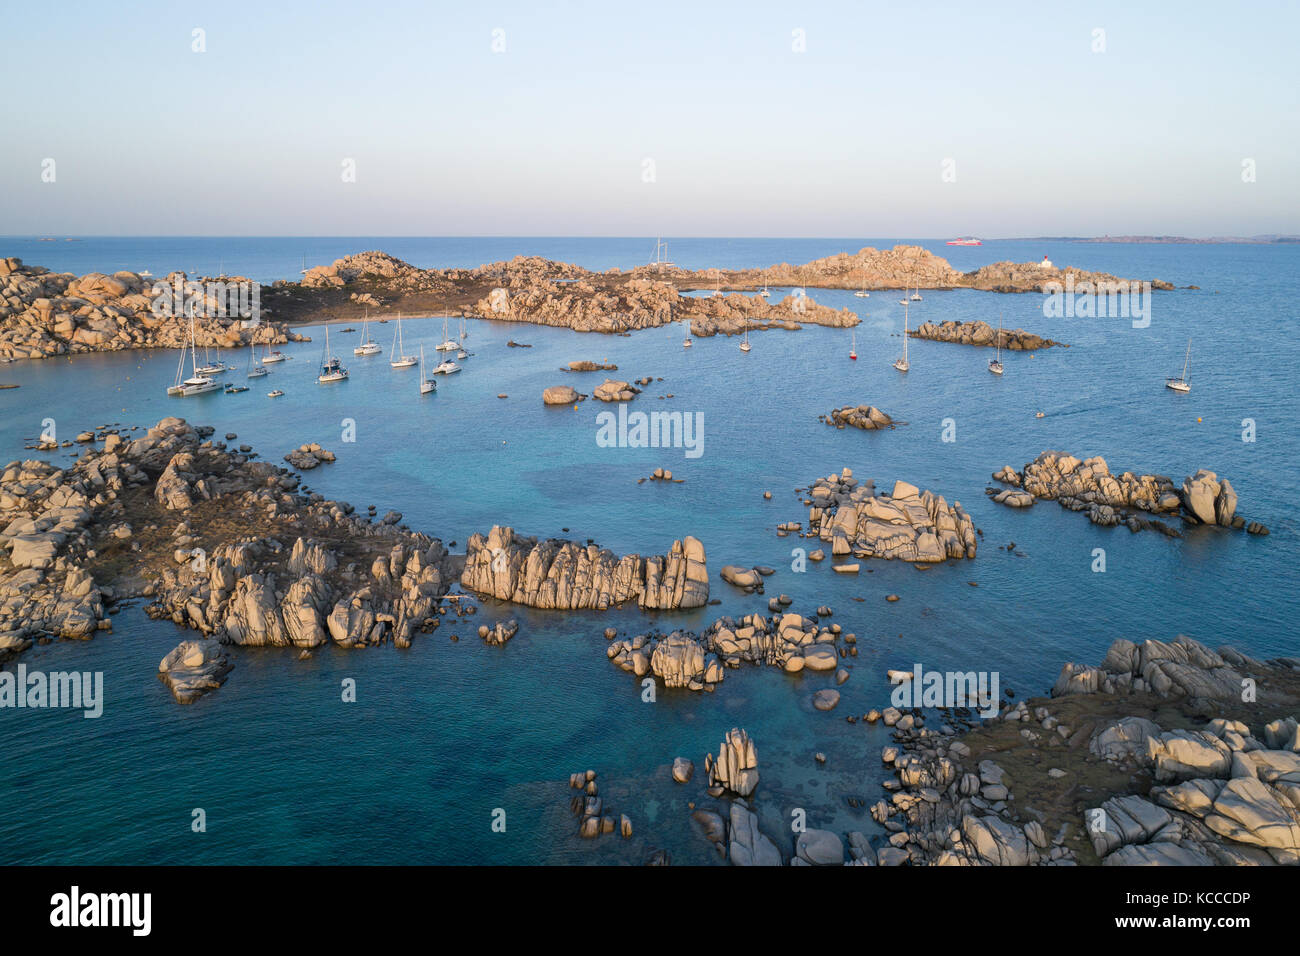 Aerial view of Lavezzi island, France - Stock Image